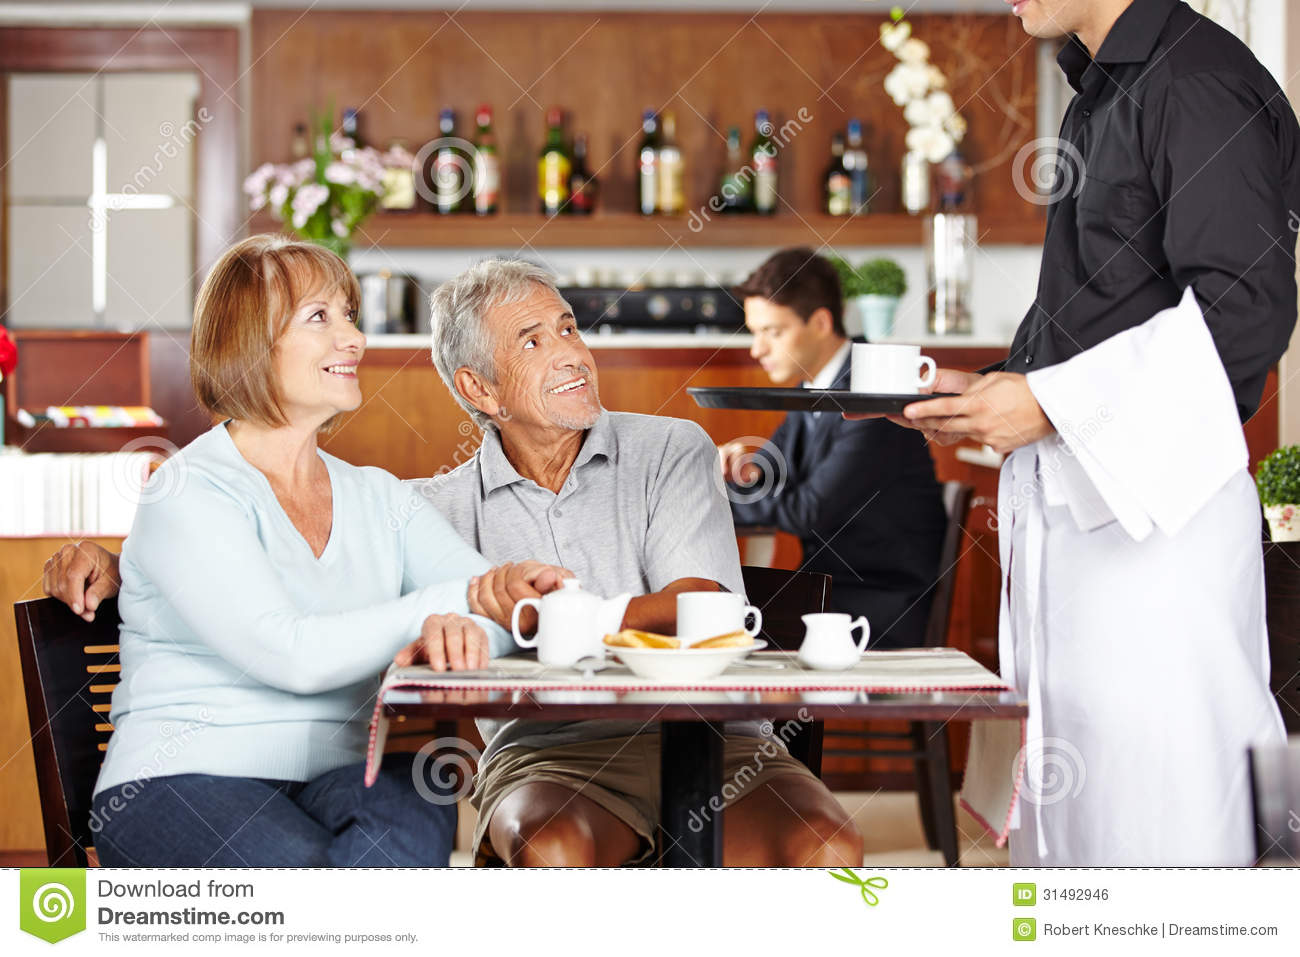 Kitchen themes coffee - Waiter Serving Seniors In Coffee Shop Royalty Free Stock Image Image